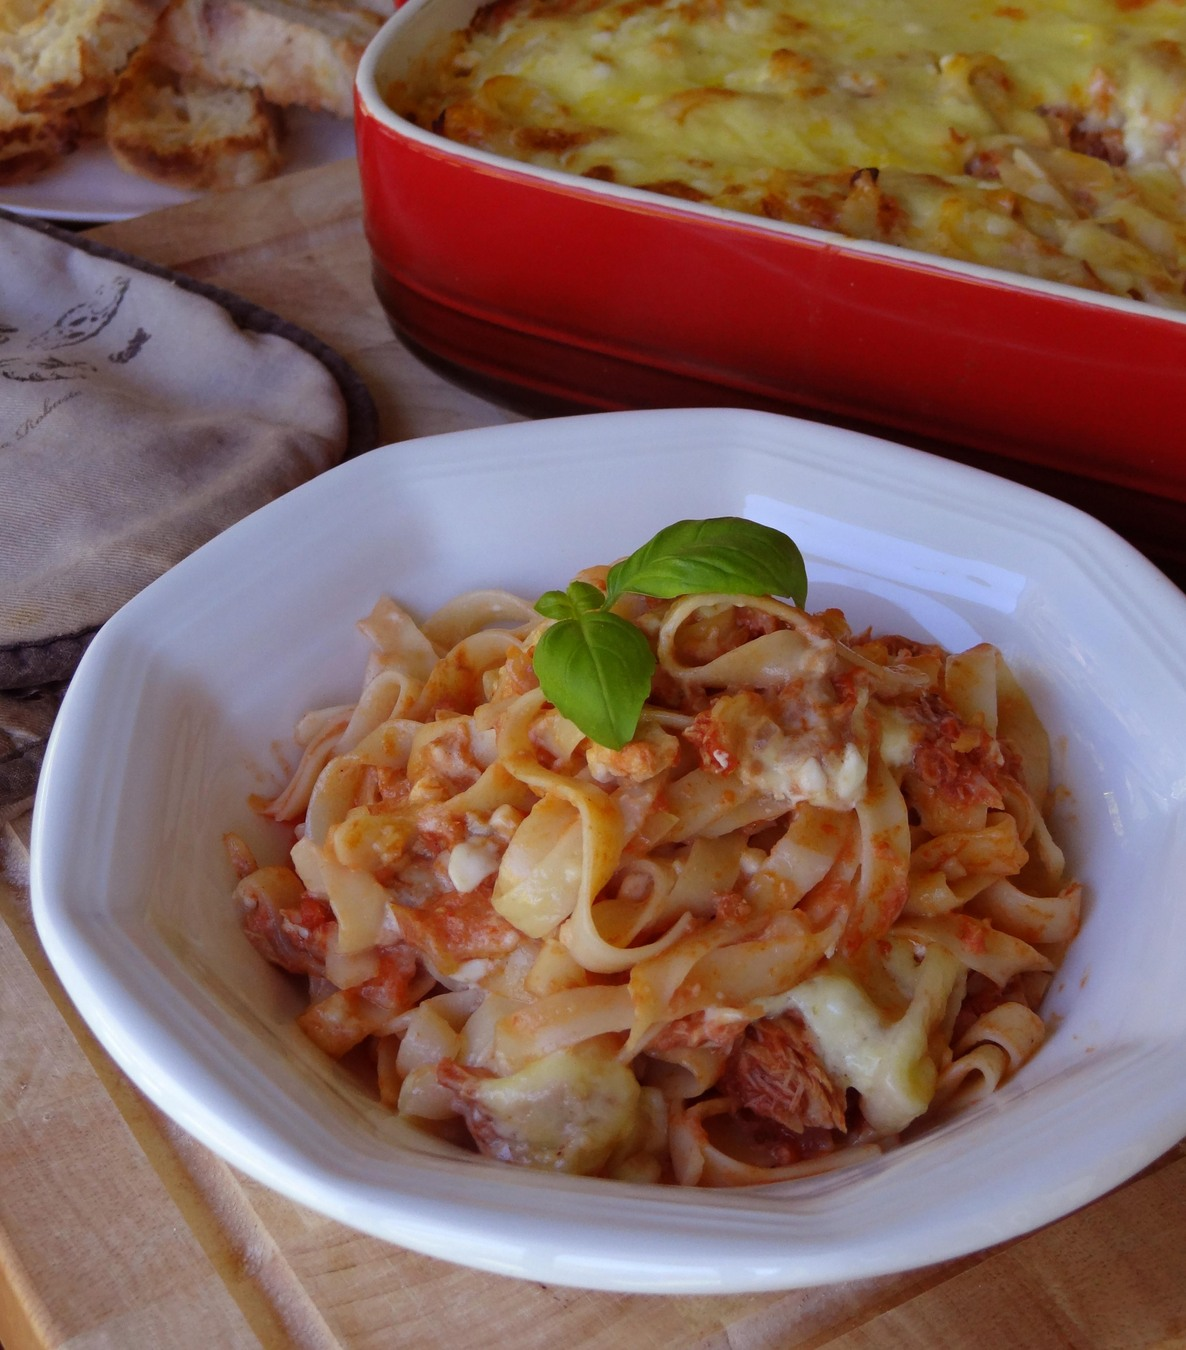 Easy Family Meal - Tune Fettuccine Bake